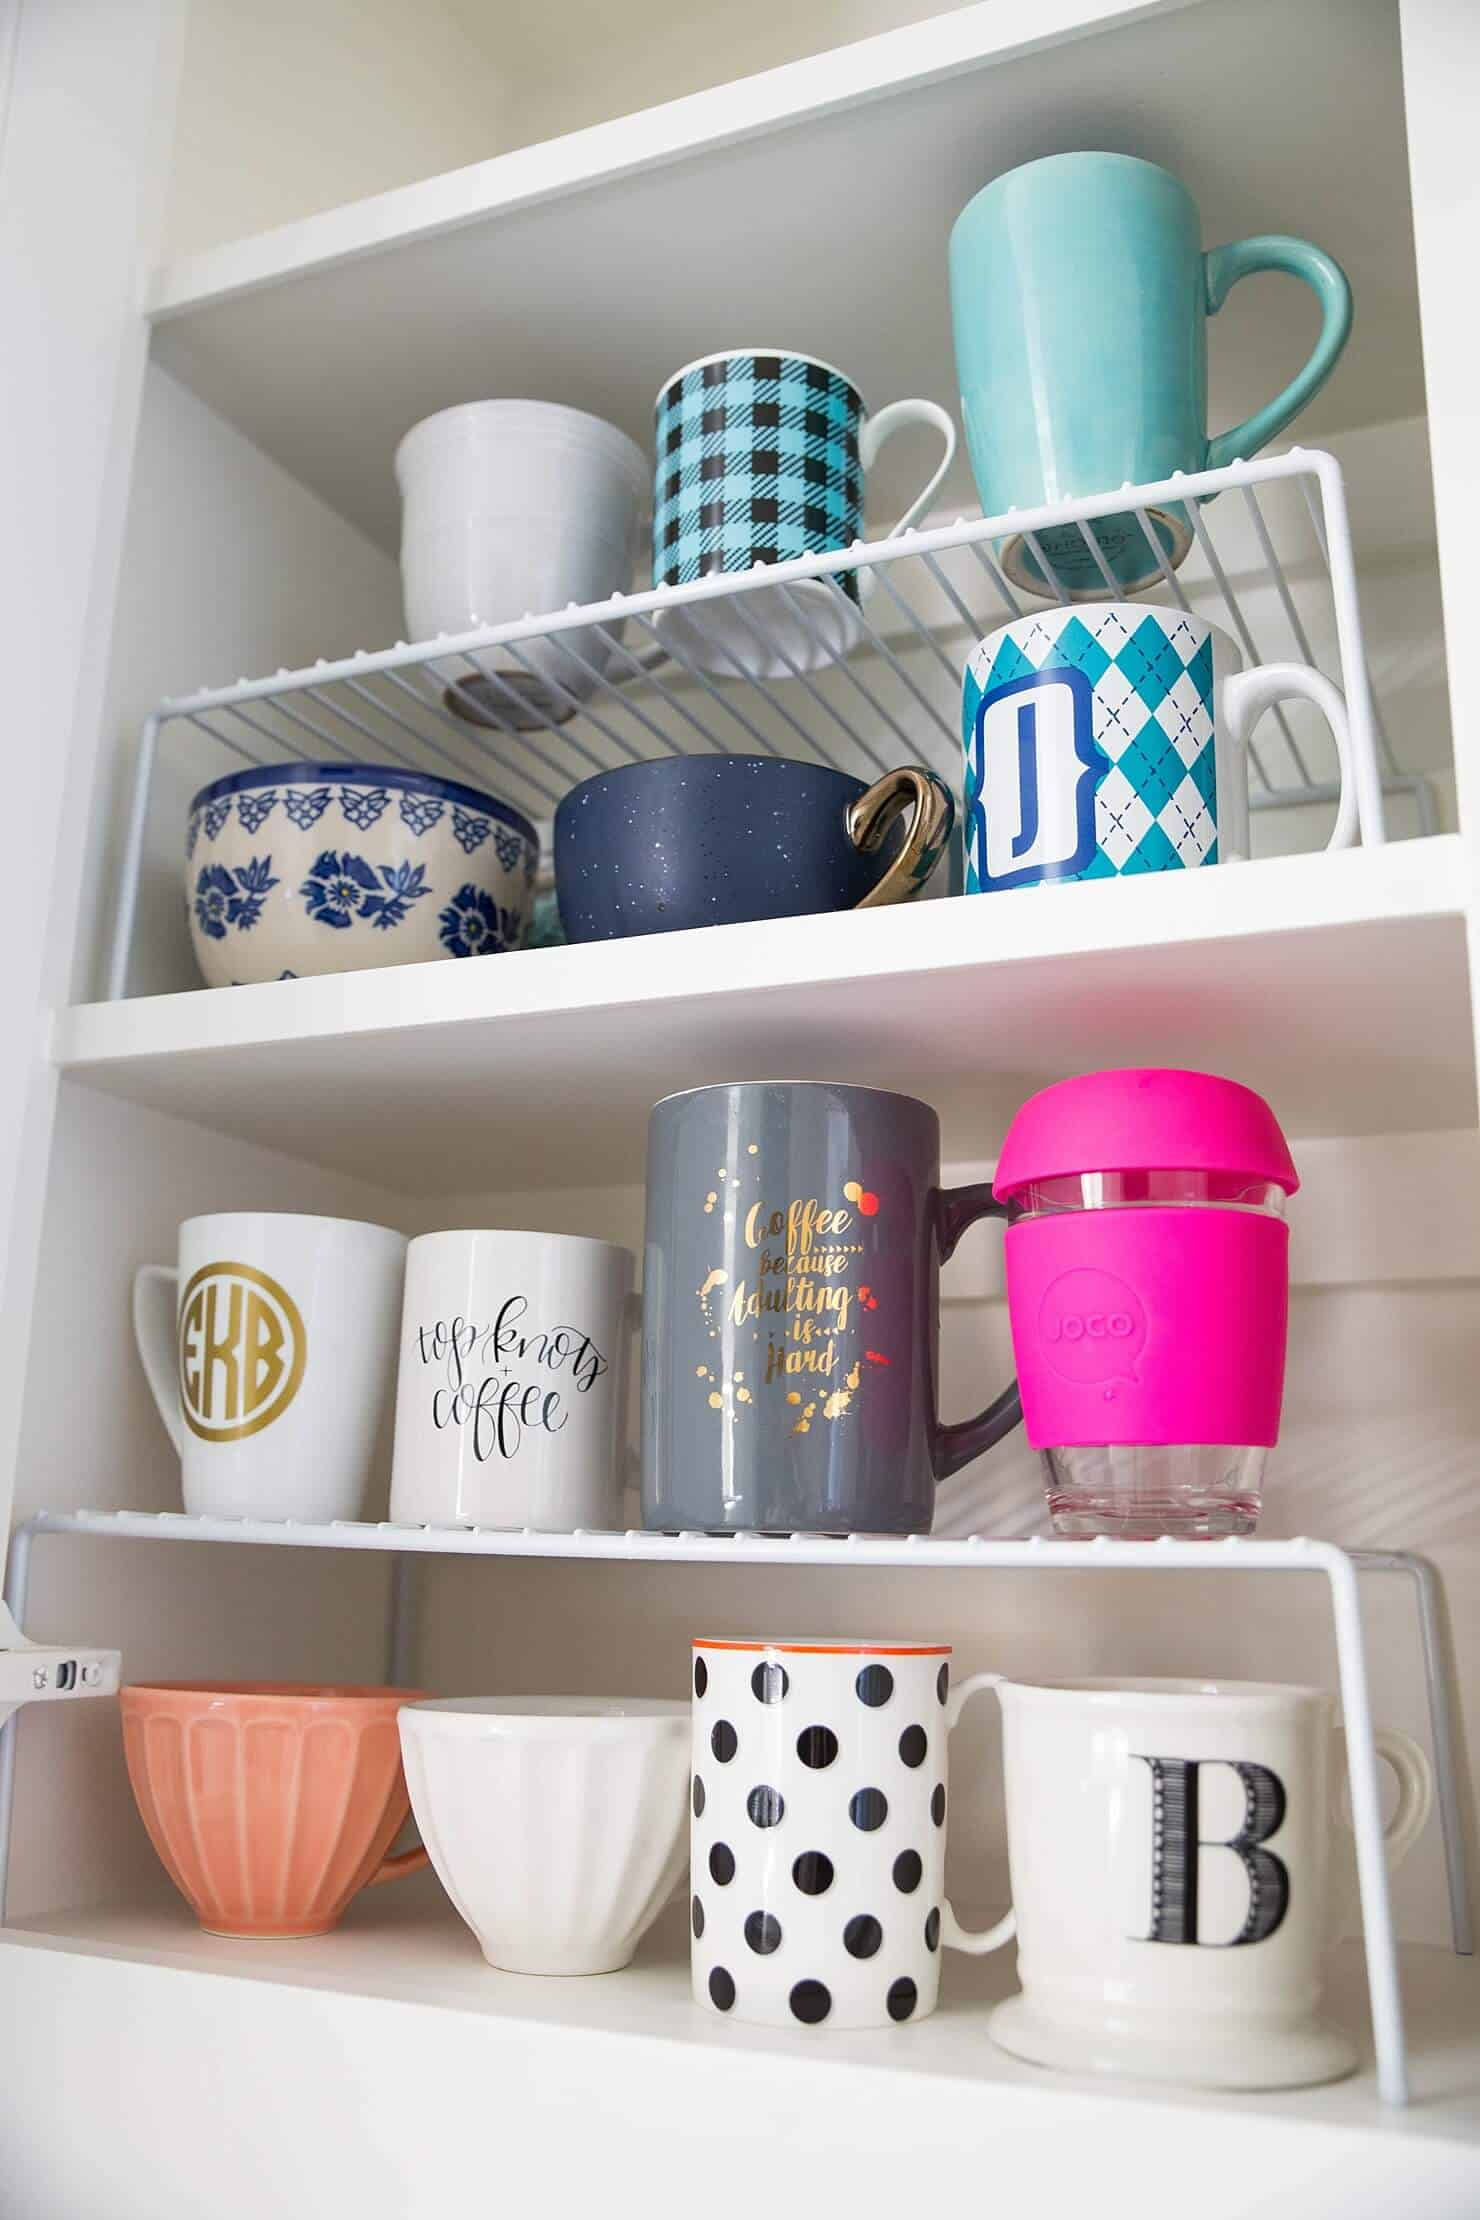 11 Genius Ways To Organize Kitchen Cabinets